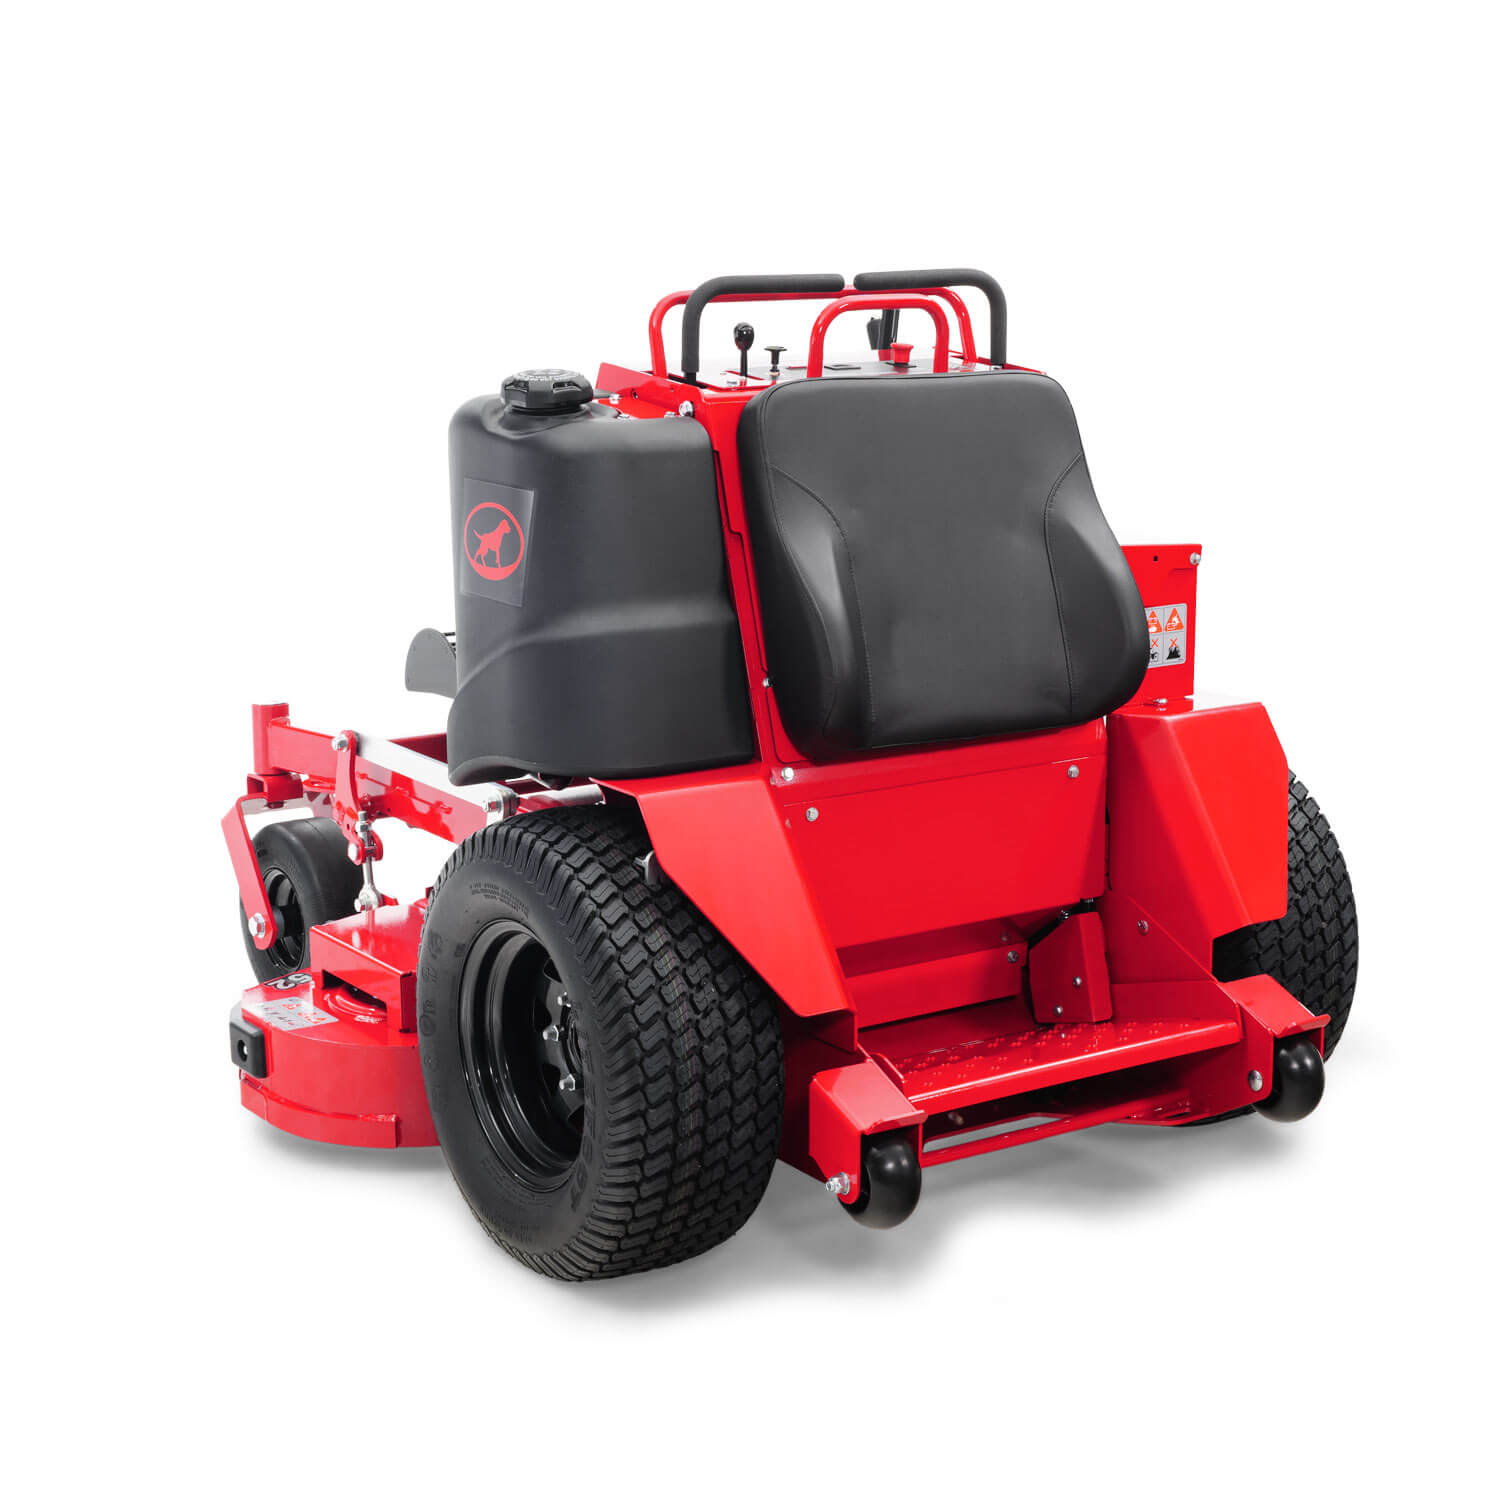 Image of the back of a red stand-on mower showing the operator platform